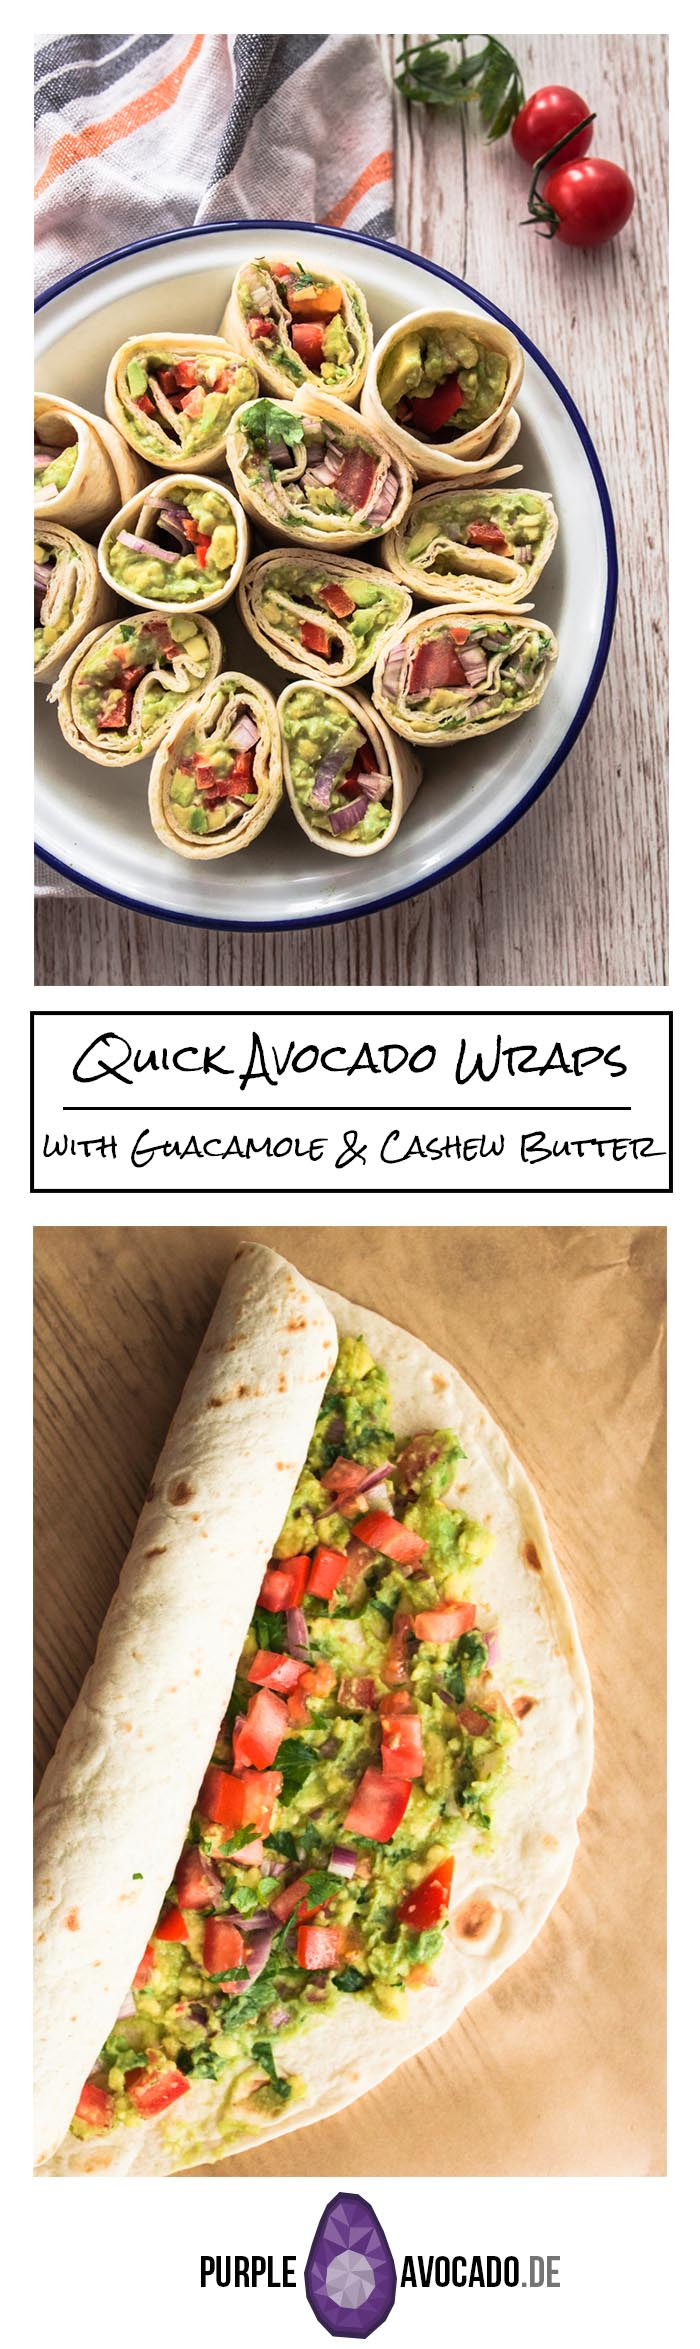 If you're in a rush and need some delicious food for your next picknick, road trip, fingerfood or binge watching evening: Quick avocado wraps with two variations - with guacamole and cashew butter. Uncomplicated and delicious! Recipe and Foodstyling by Purple Avocado / Sabrina Dietz